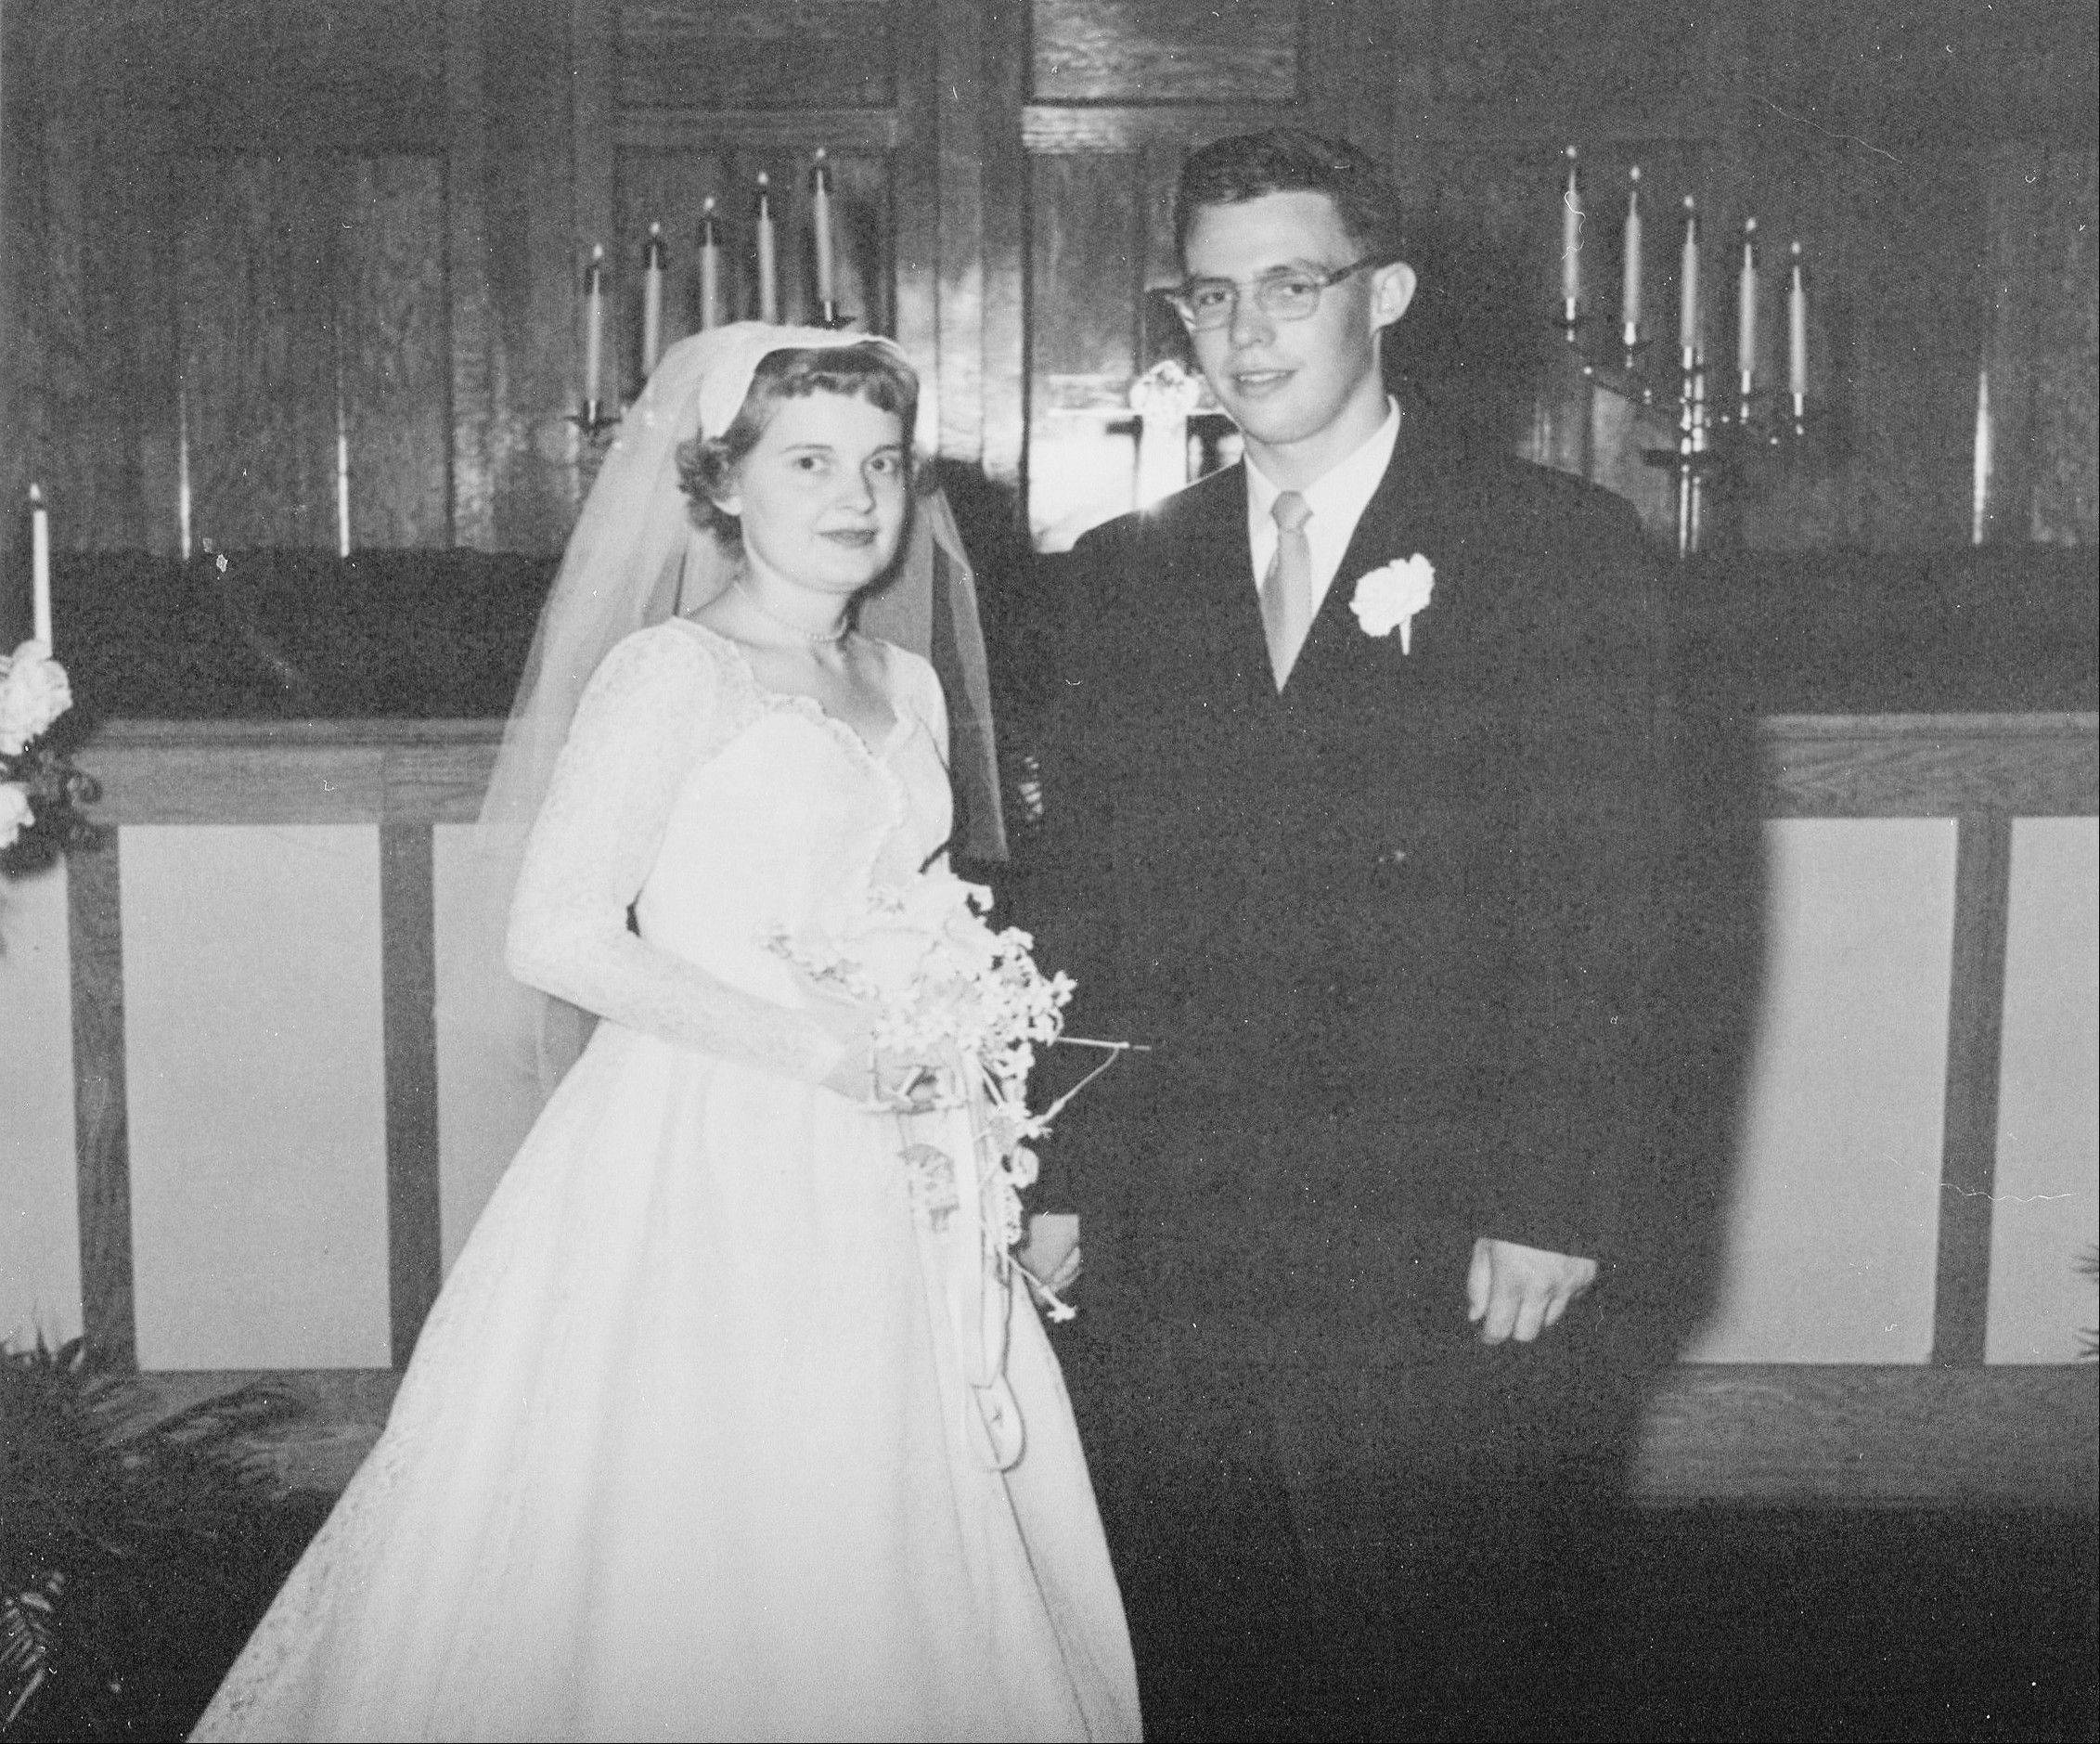 Jim Lancaster and his bride, Patti, on their wedding day.